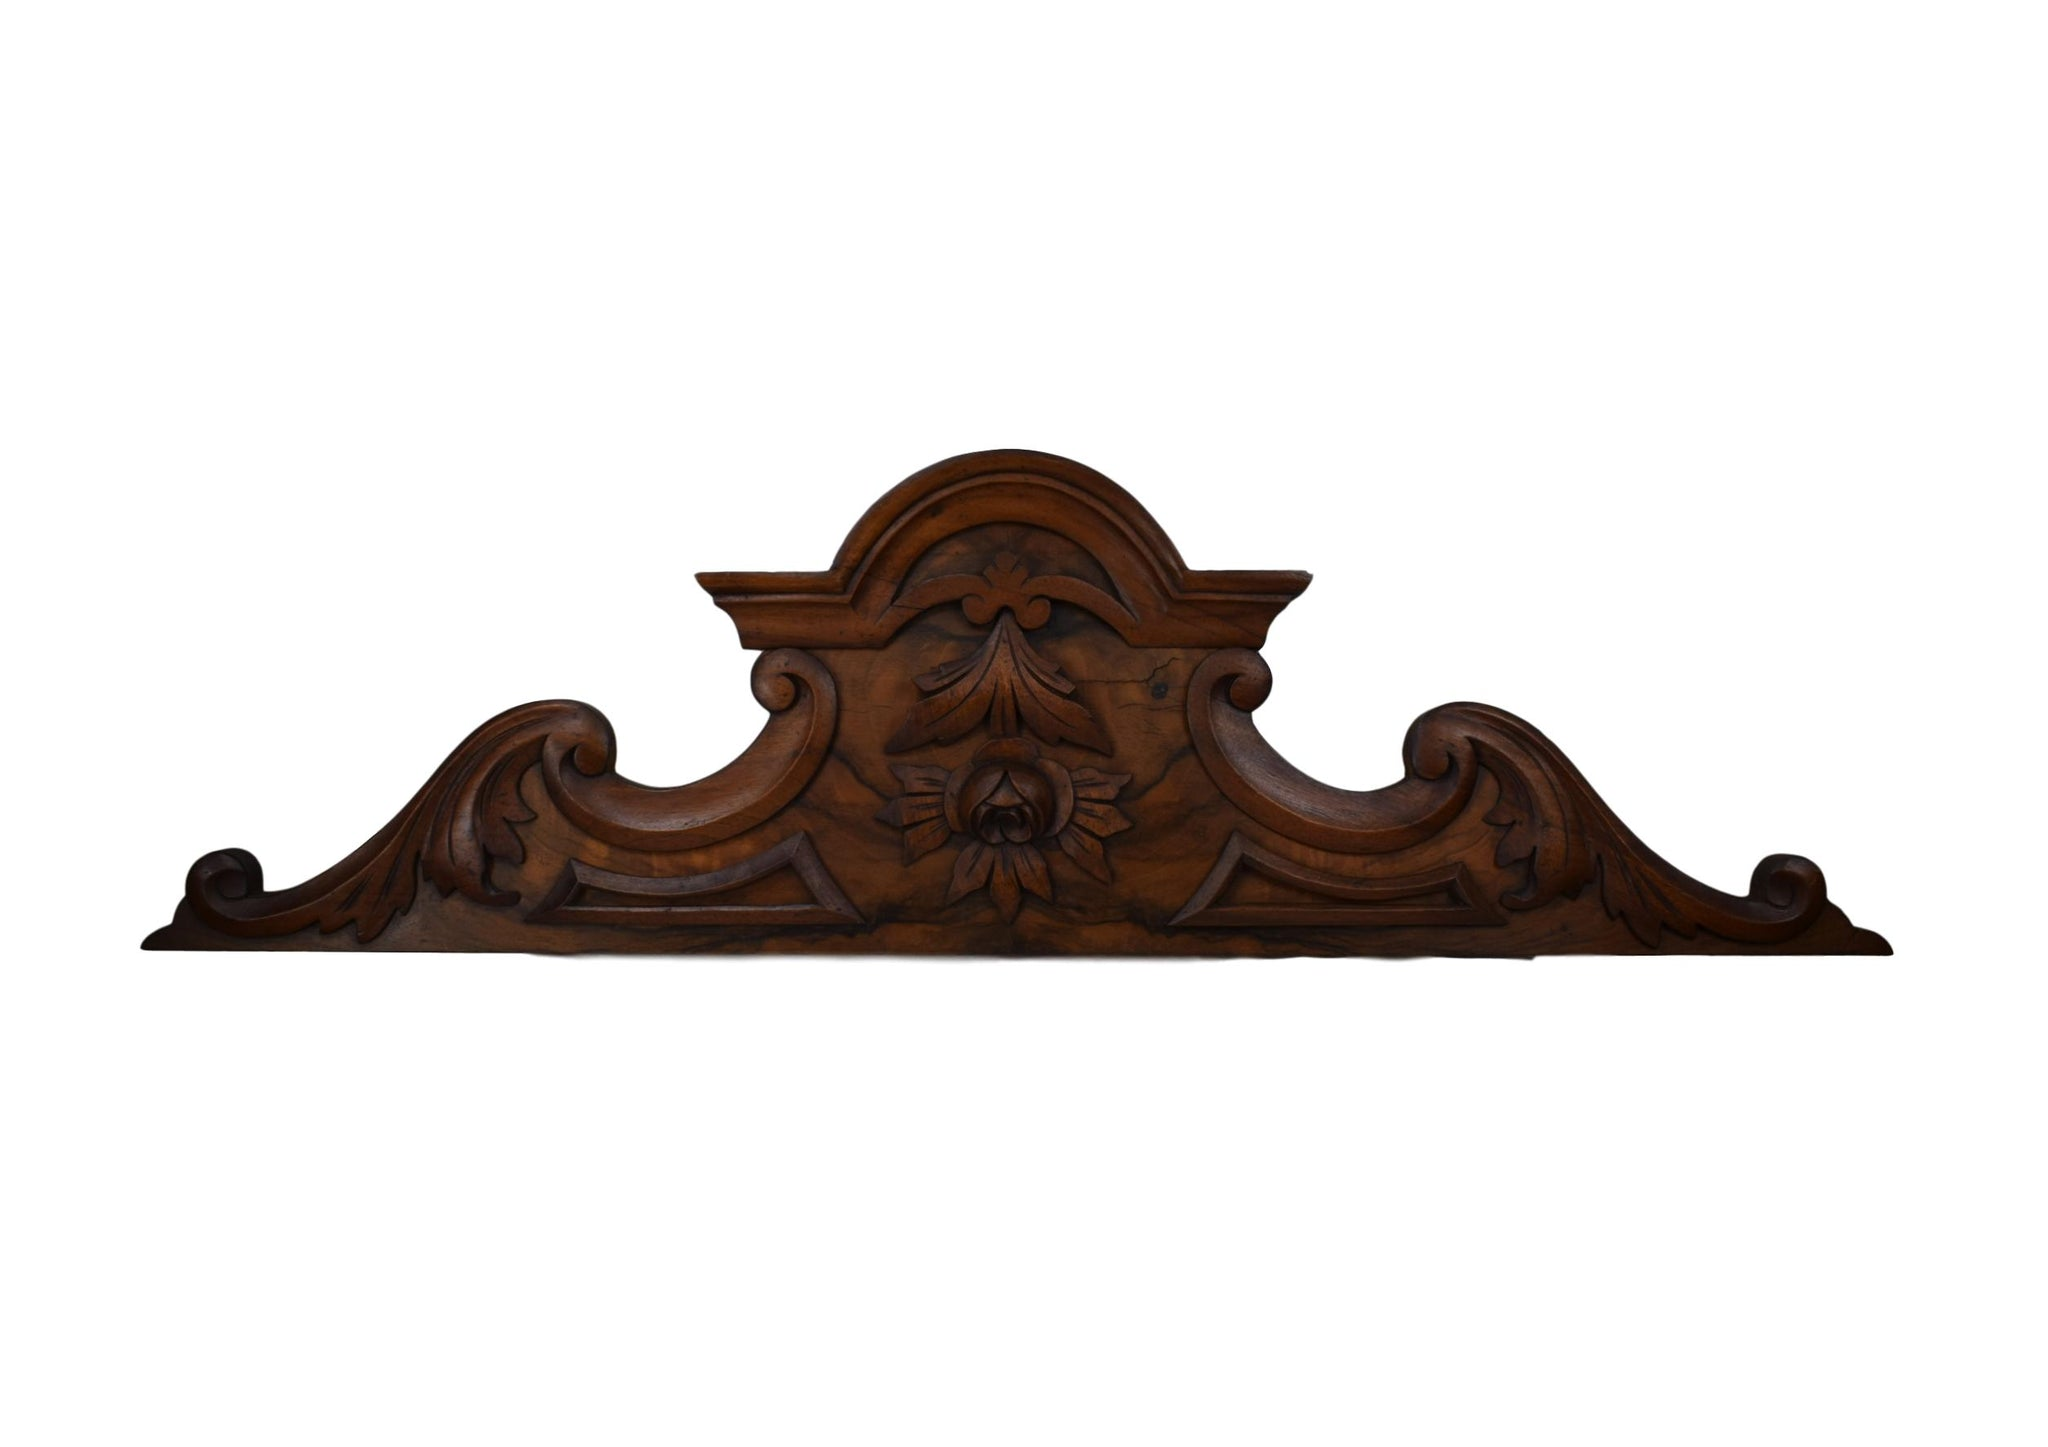 French Antique Carved Wood Pediment, French Antique Furniture Ornament Fronton Cornice, Veneer Wood Above Door Decor, Gustavian Style